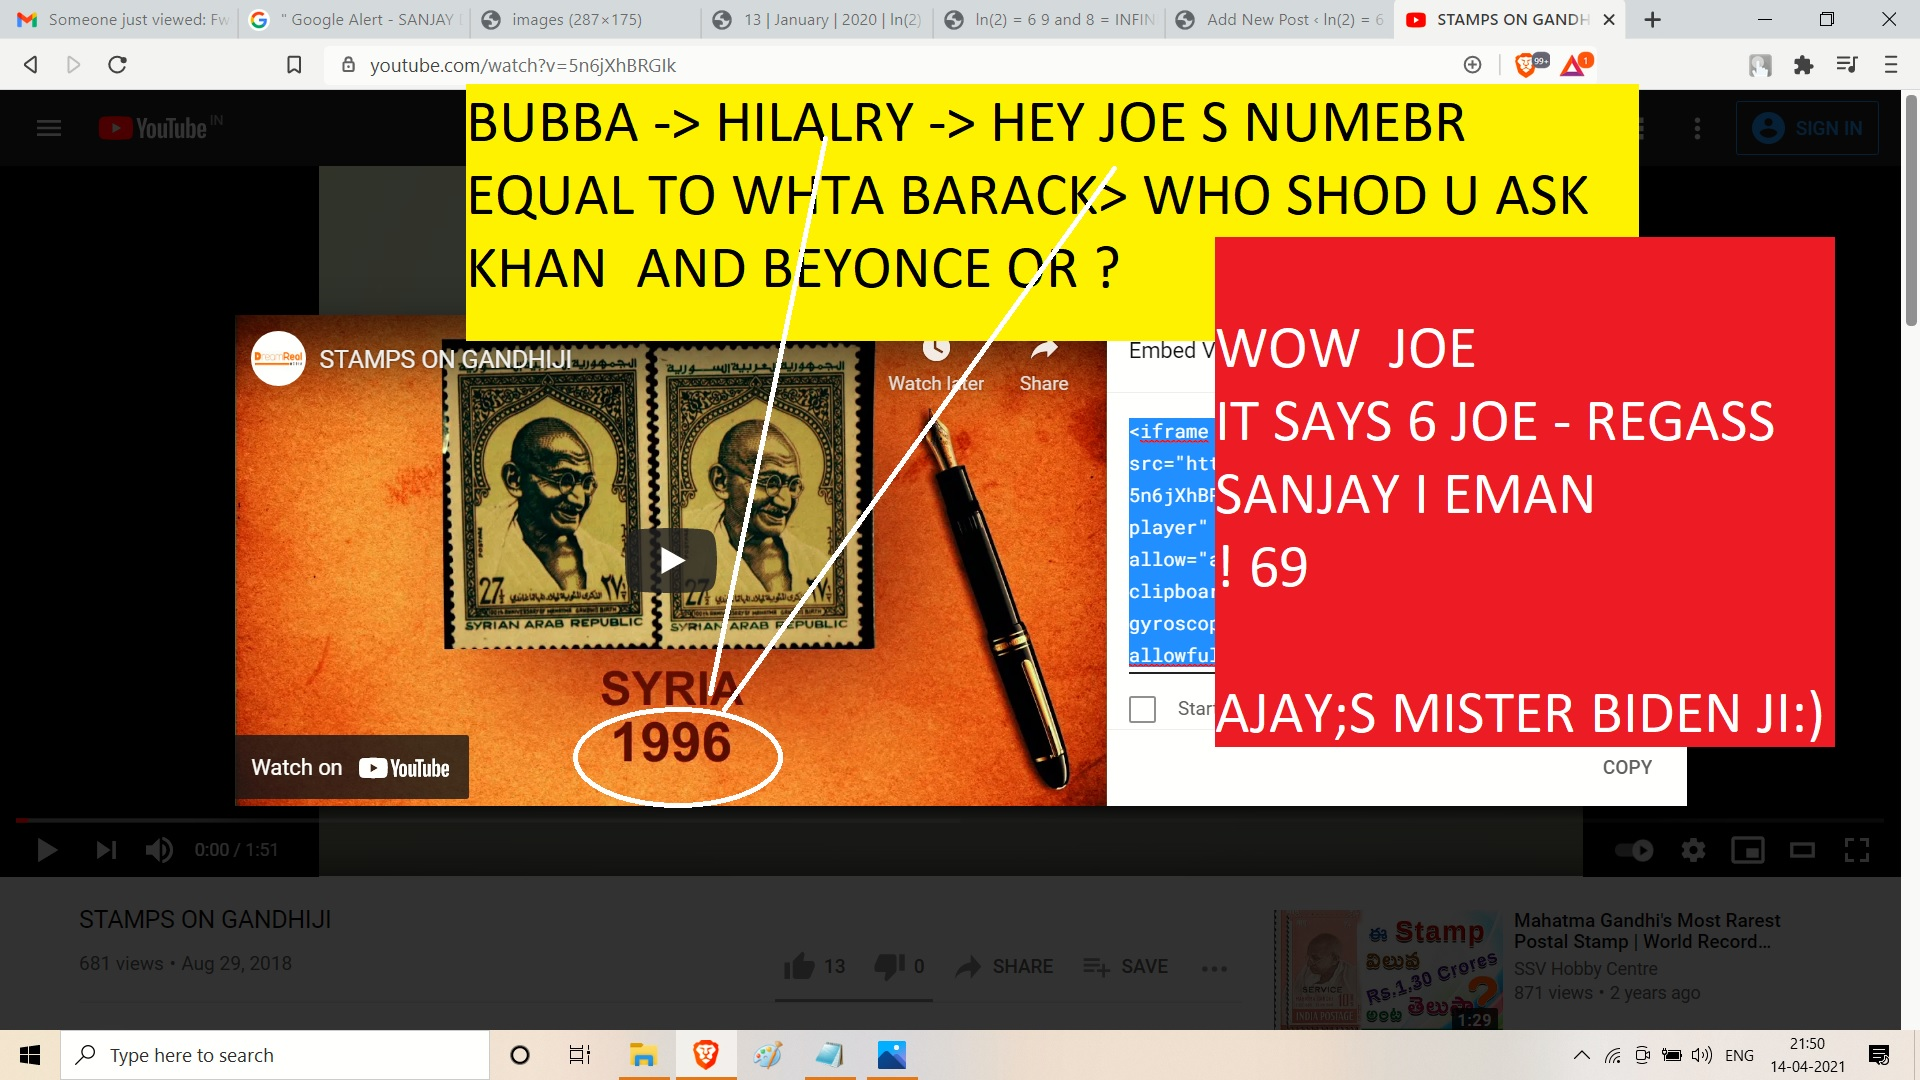 GANDHI AND ATNSP AND JOE BDIEN AND AJAY MISHRA AND SNAJAY DUTT AND 1969 OR 5 AN D8 AND SYRIA ITHSONE SANJAY